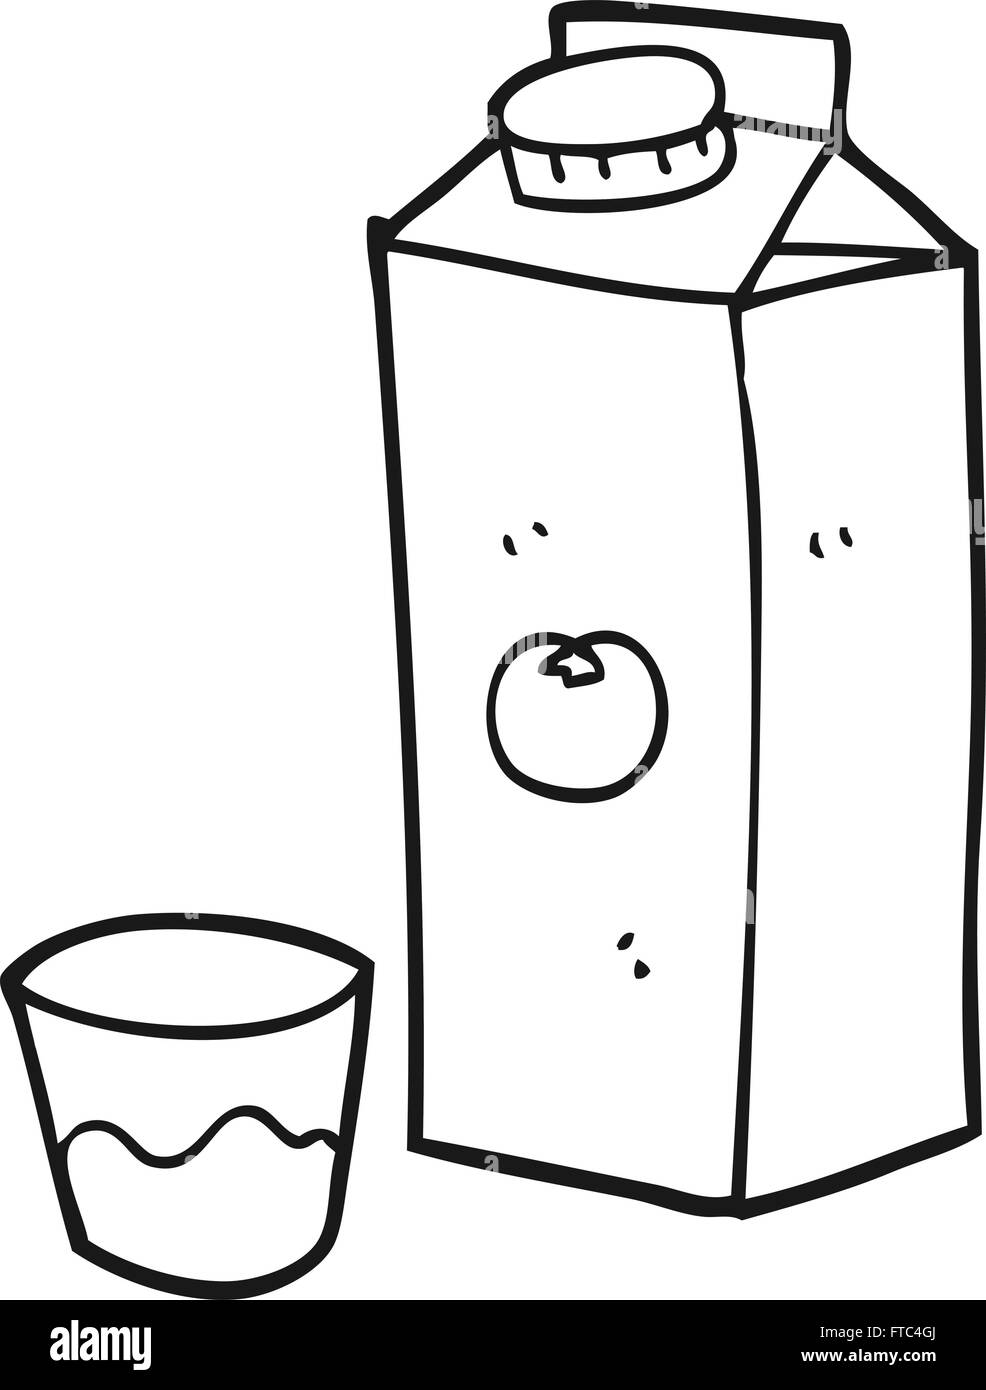 Colouring in juice - Freehand Drawn Black And White Cartoon Orange Juice